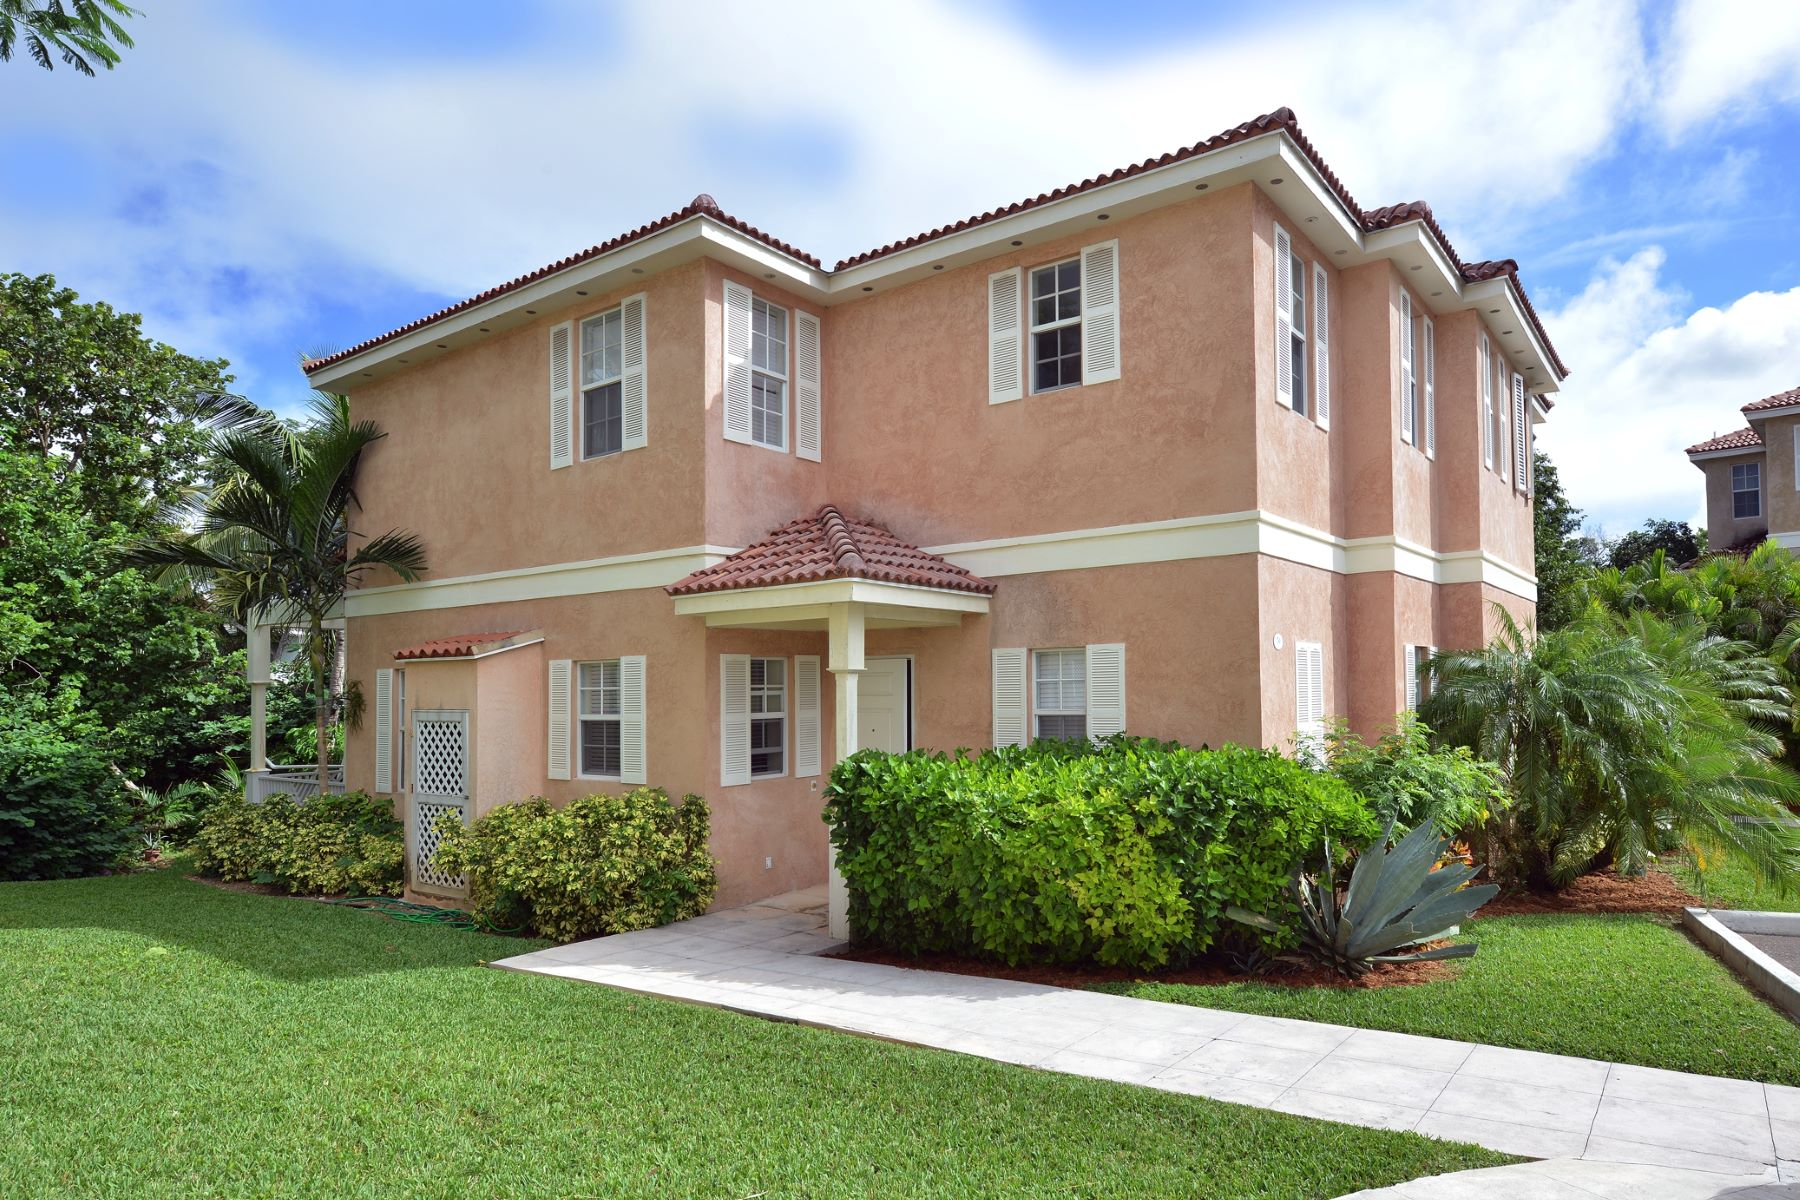 Townhouse for Sale at Balmoral #GR79 Balmoral, Prospect Ridge, Nassau And Paradise Island Bahamas